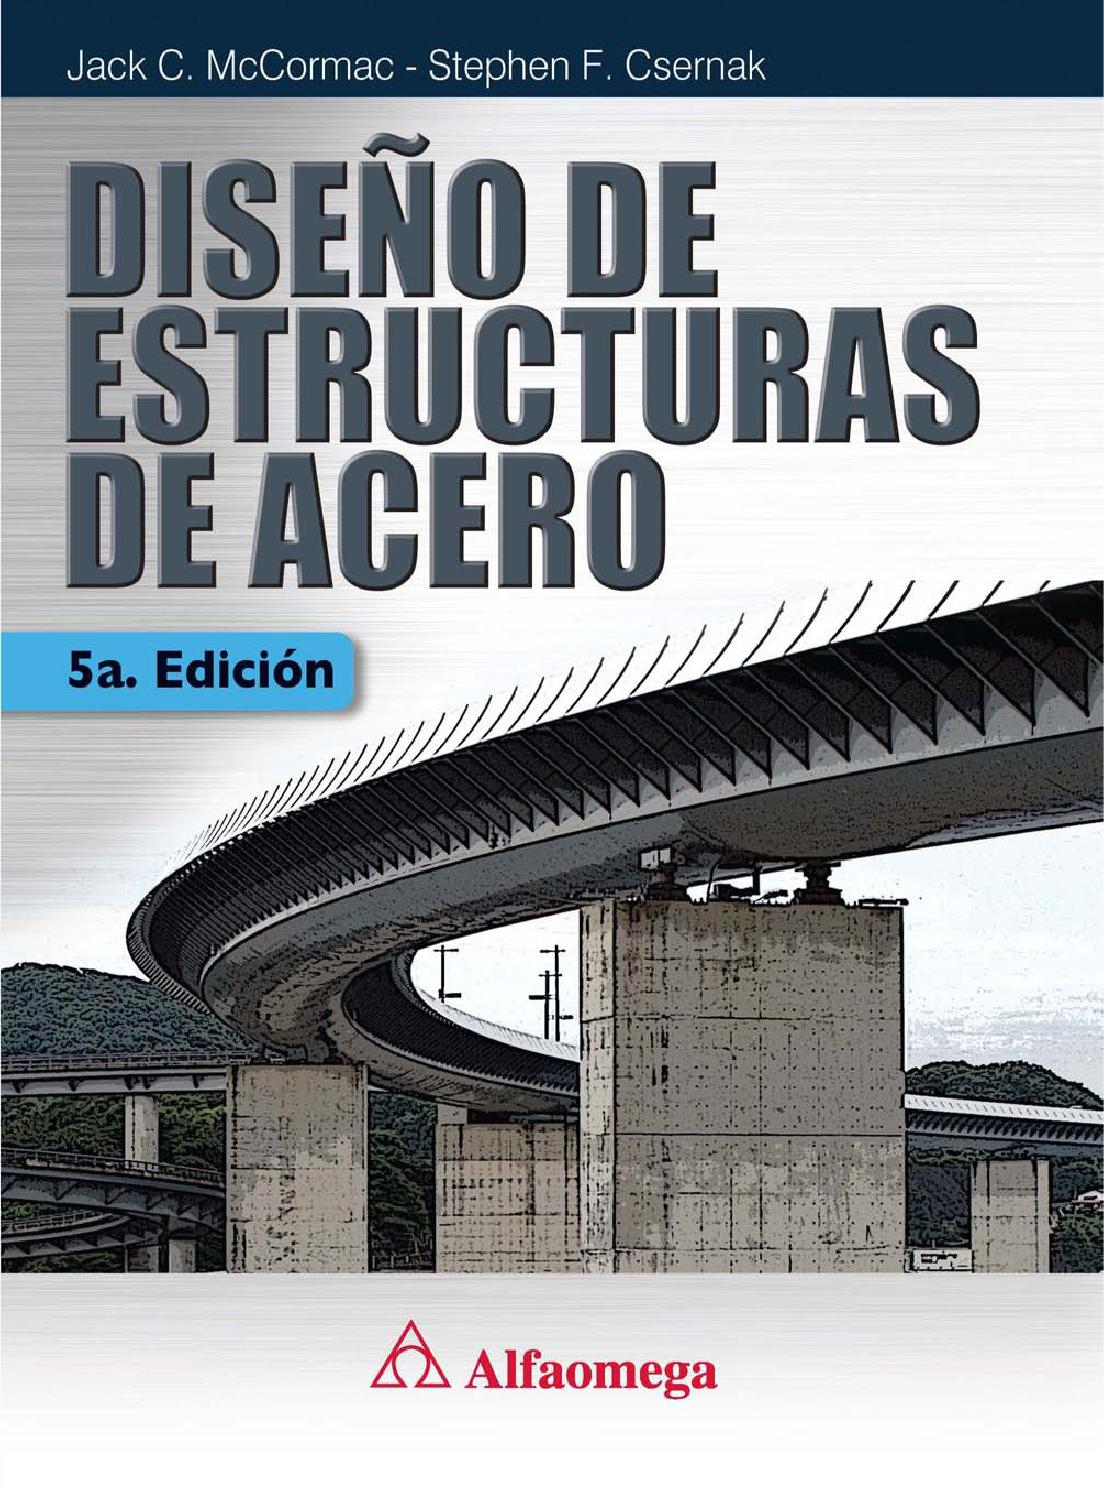 structural steel design 5th edition mccormac solution manual pdf